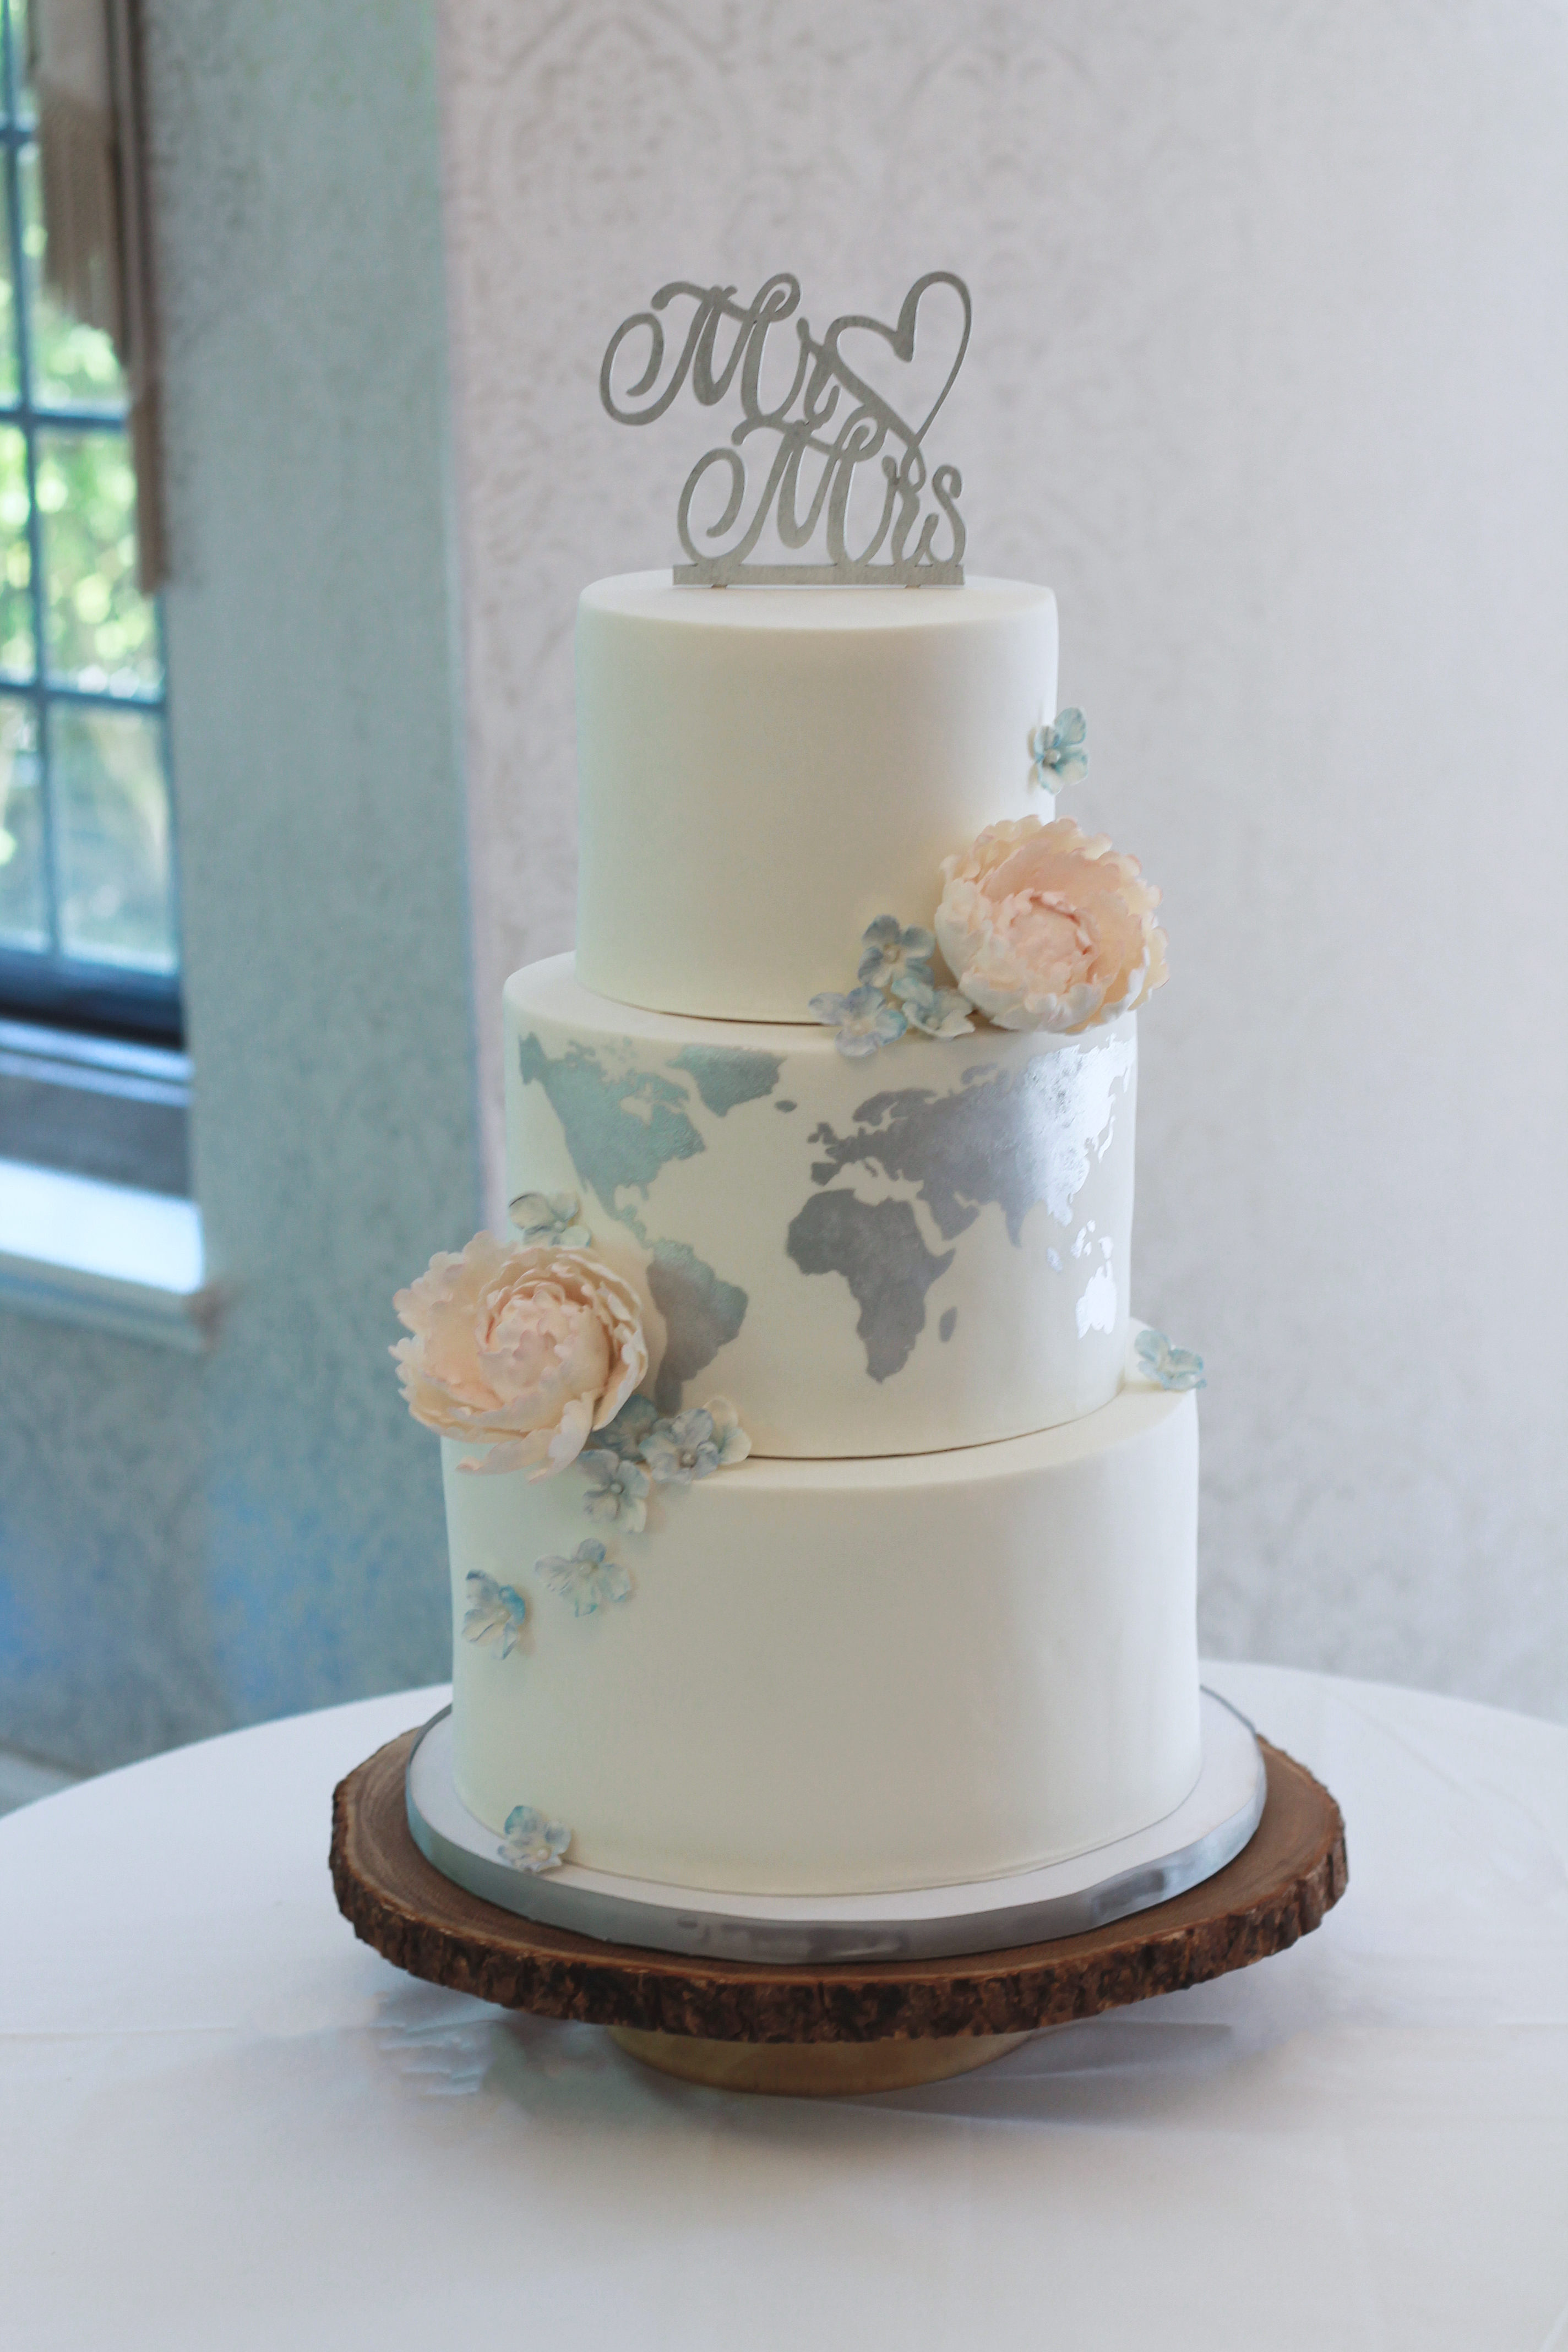 White with silver traveling themed wedding cake